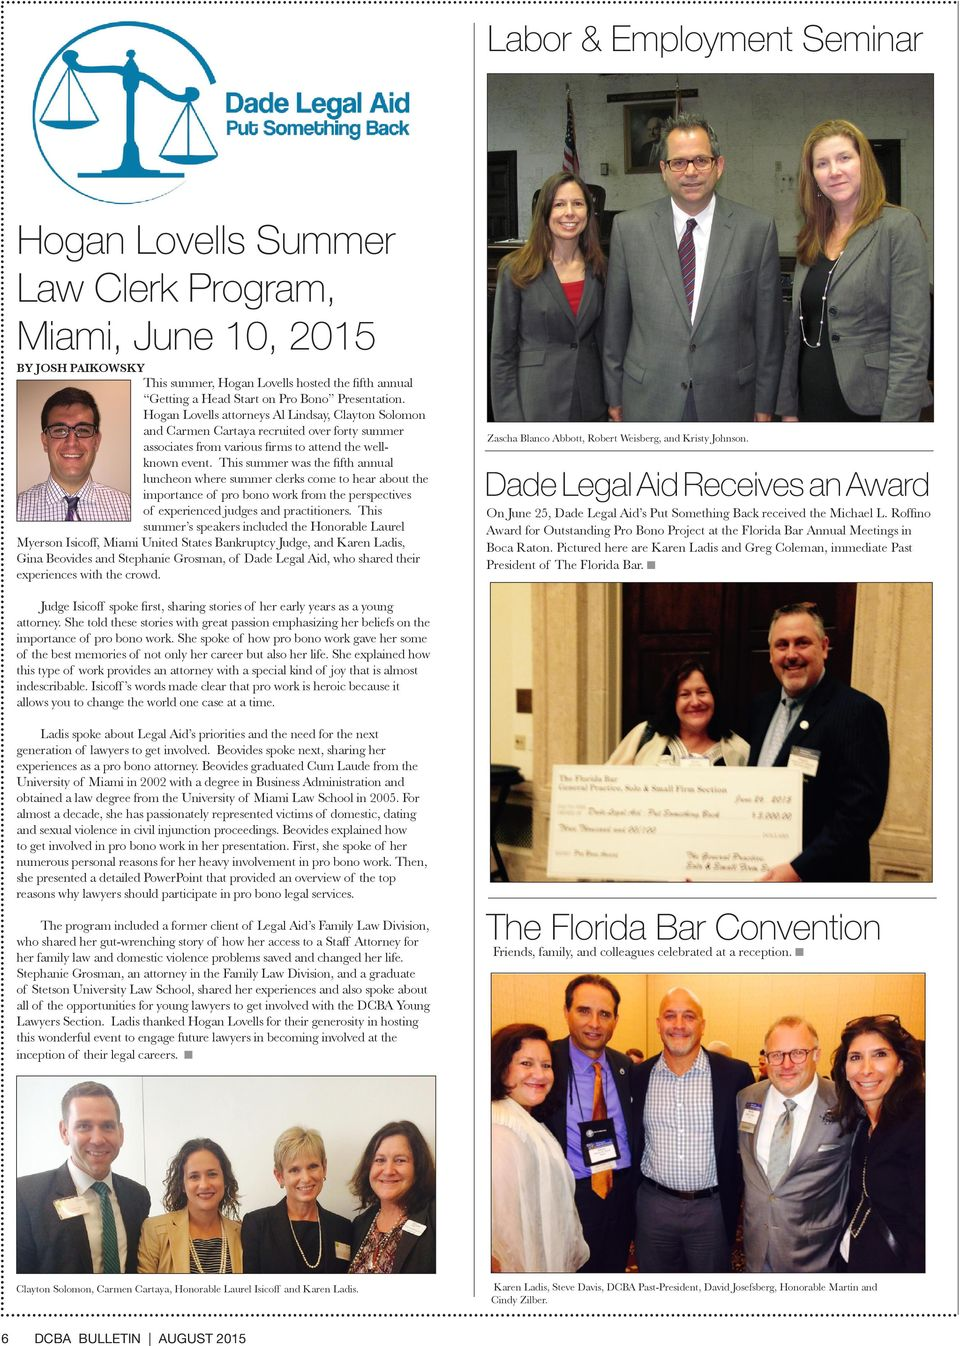 This summer was the fifth annual luncheon where summer clerks come to hear about the importance of pro bono work from the perspectives of experienced judges and practitioners.